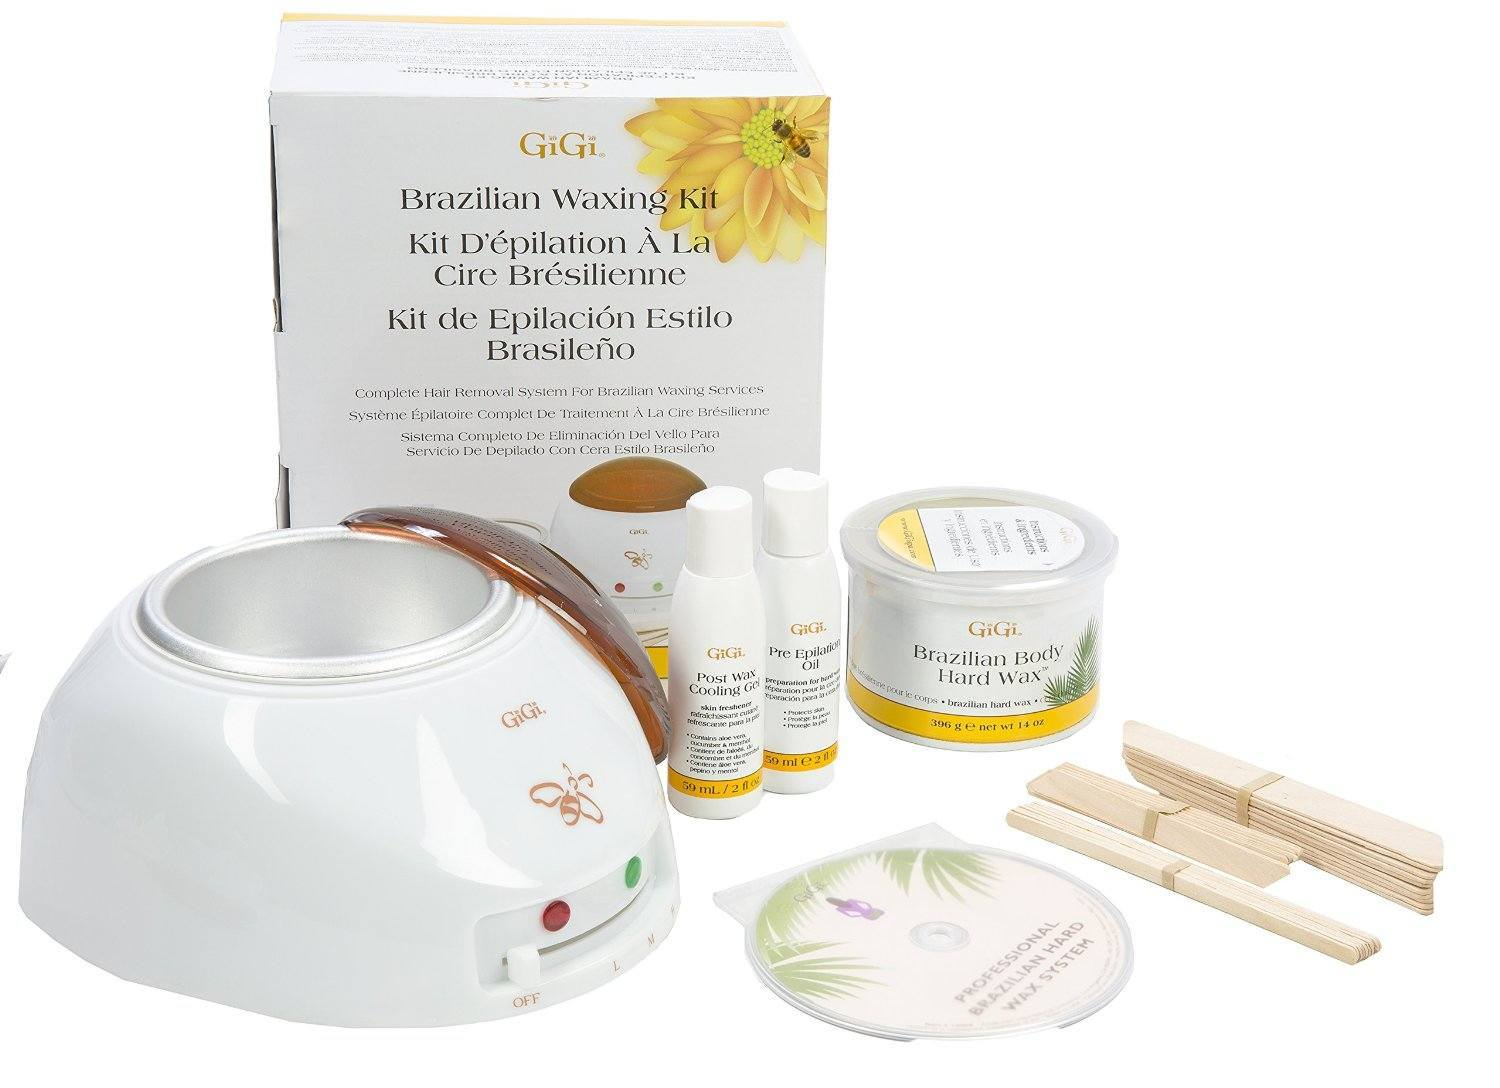 10 Best Home Waxing Kit Options for 2018 | Beautifully Alive